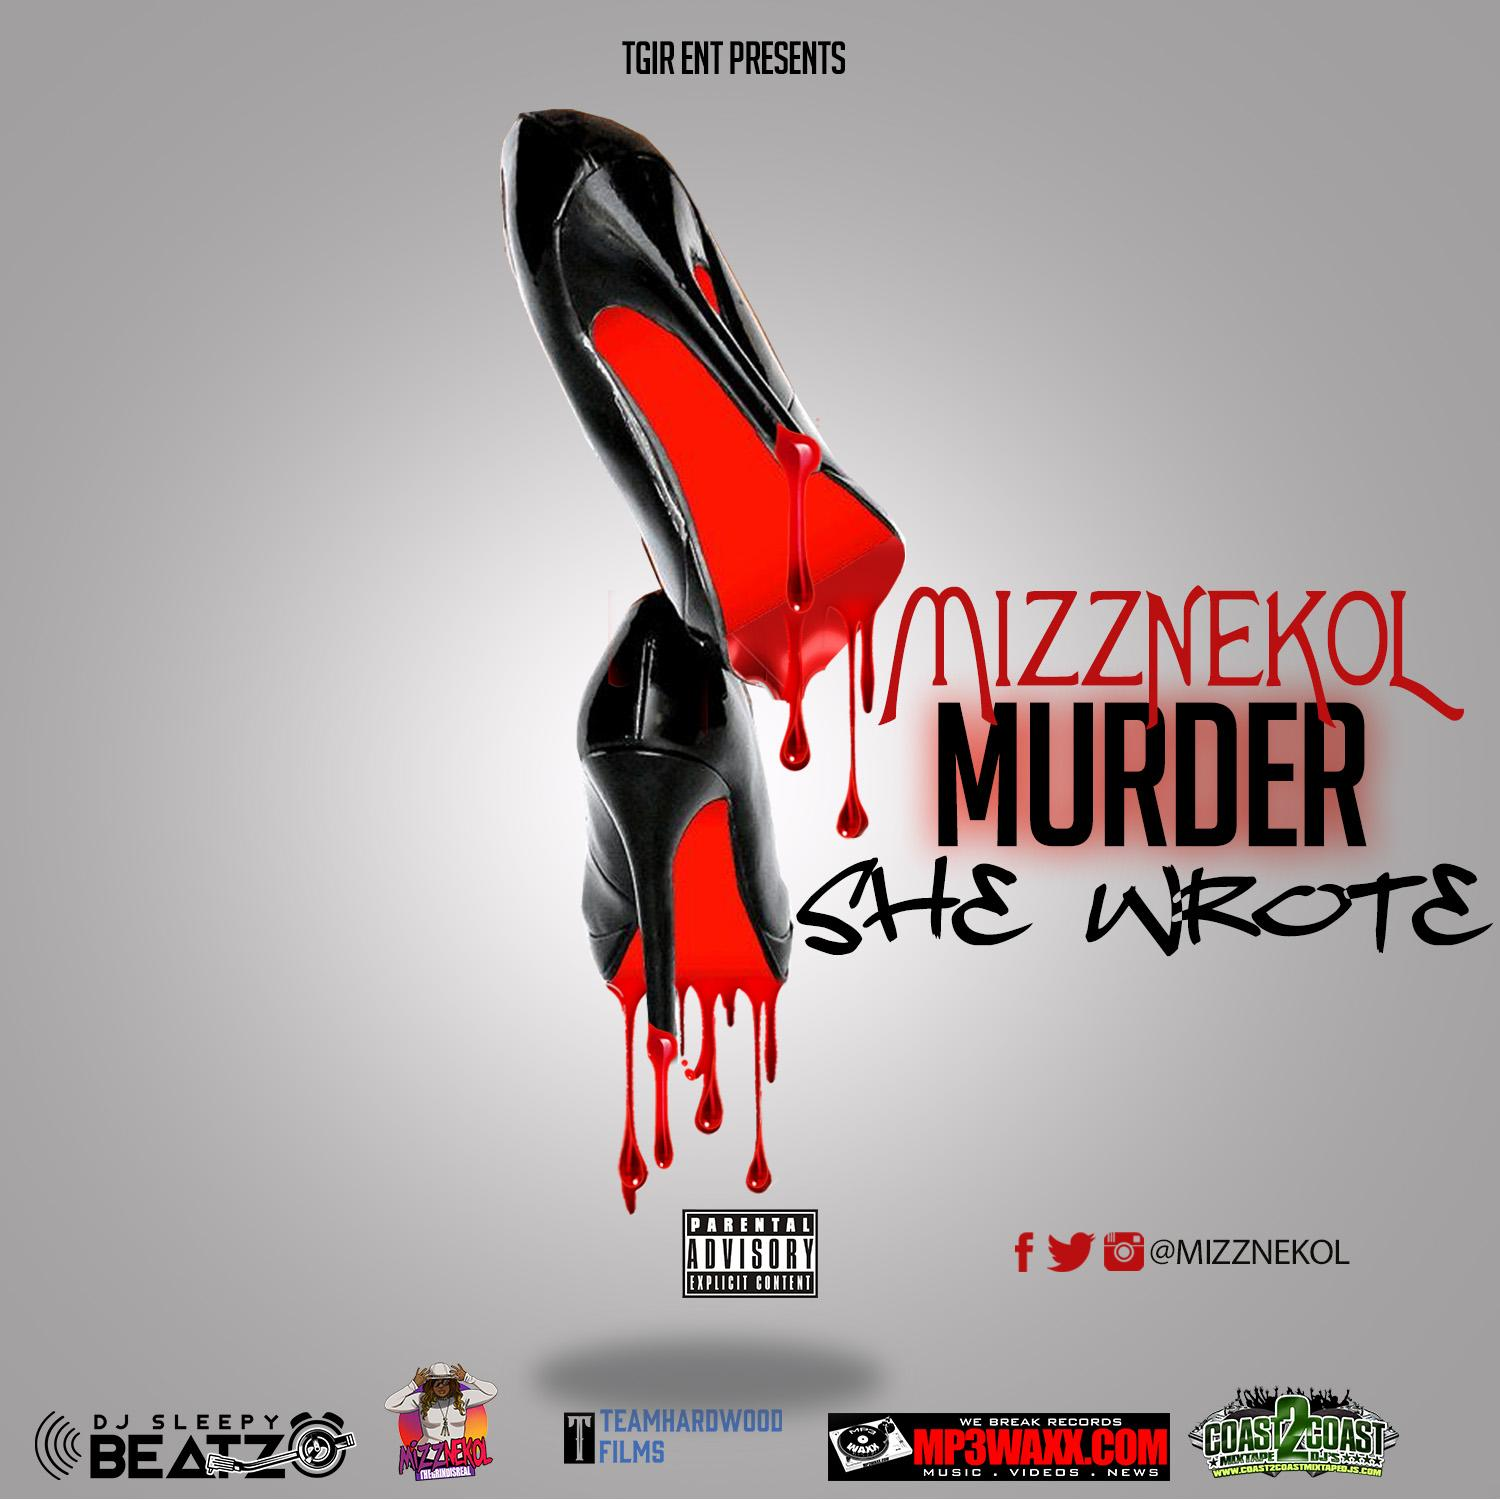 murder she wrote streaming online free